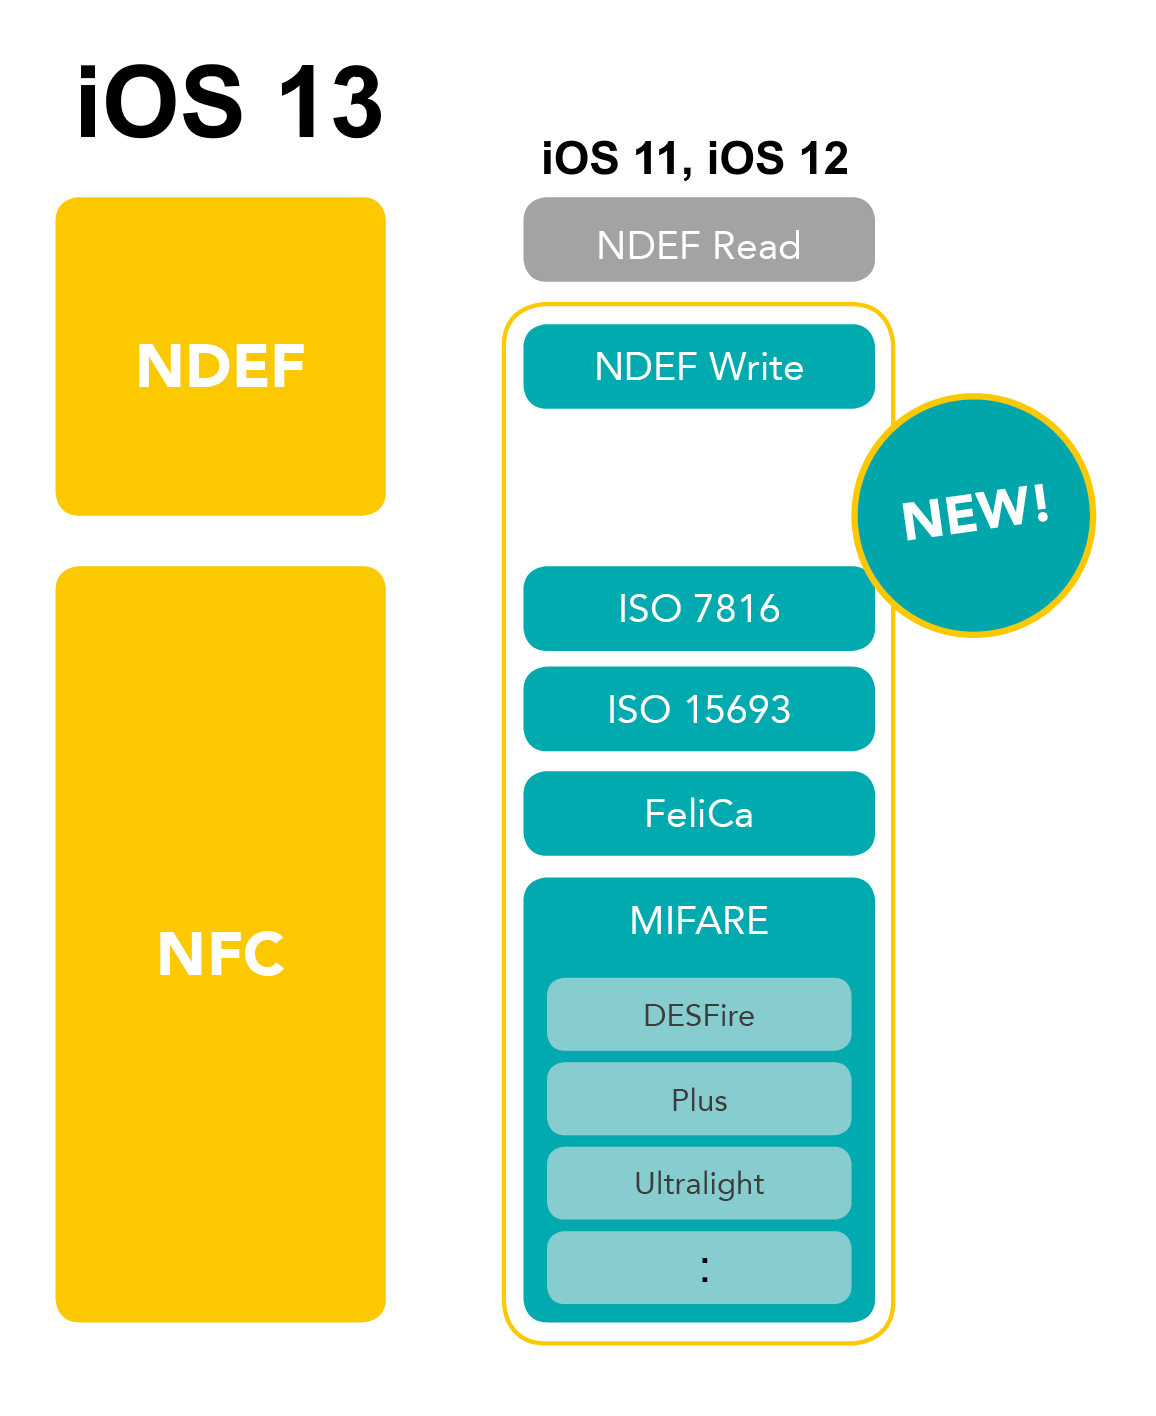 iOS 13 enables new NFC and MIFARE possibilities